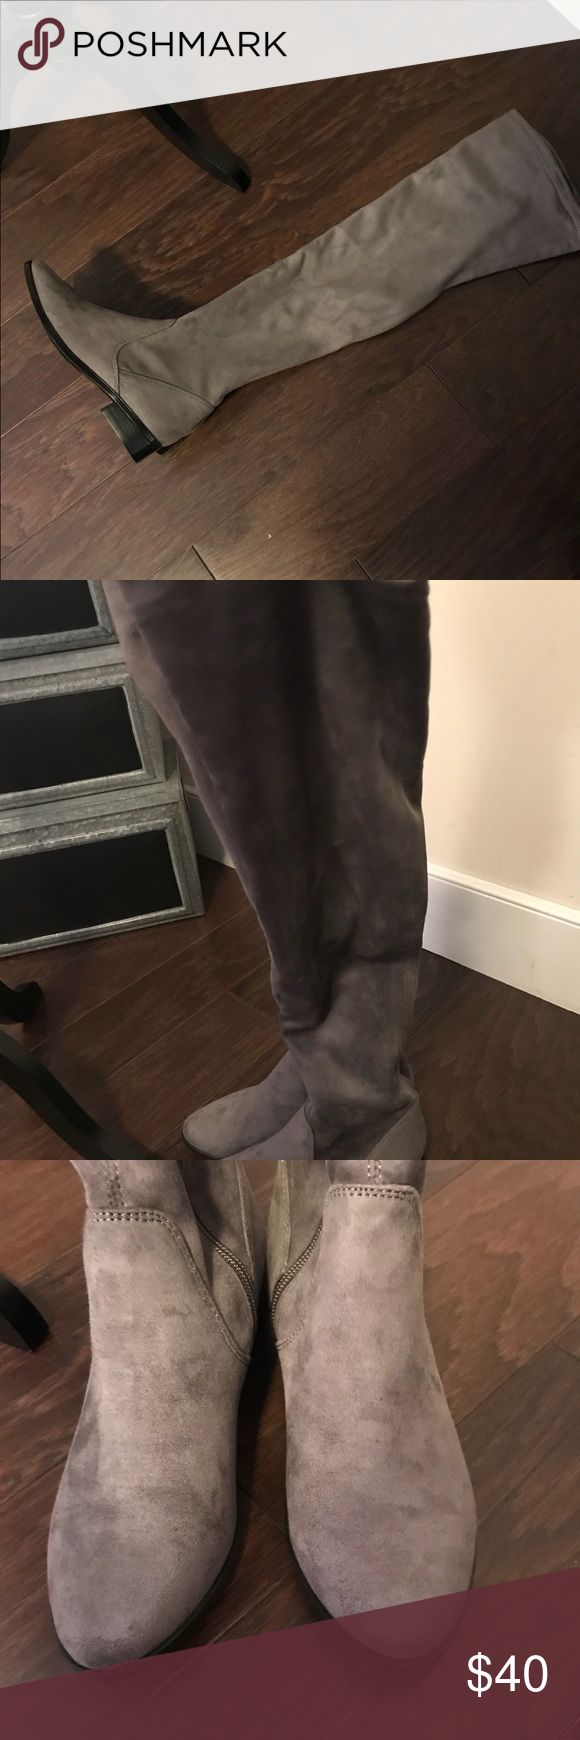 Aldo thigh high boots!! These boots are gray, only worn once, 300 yards outside of the mall. My feet were killing me in my heels, so I stopped in to get flats to get me through the day and wore them out of the store. Realized they were the wrong size. 6.5, I wear a 7.5. So no box!! Aldo Shoes Over the Knee Boots